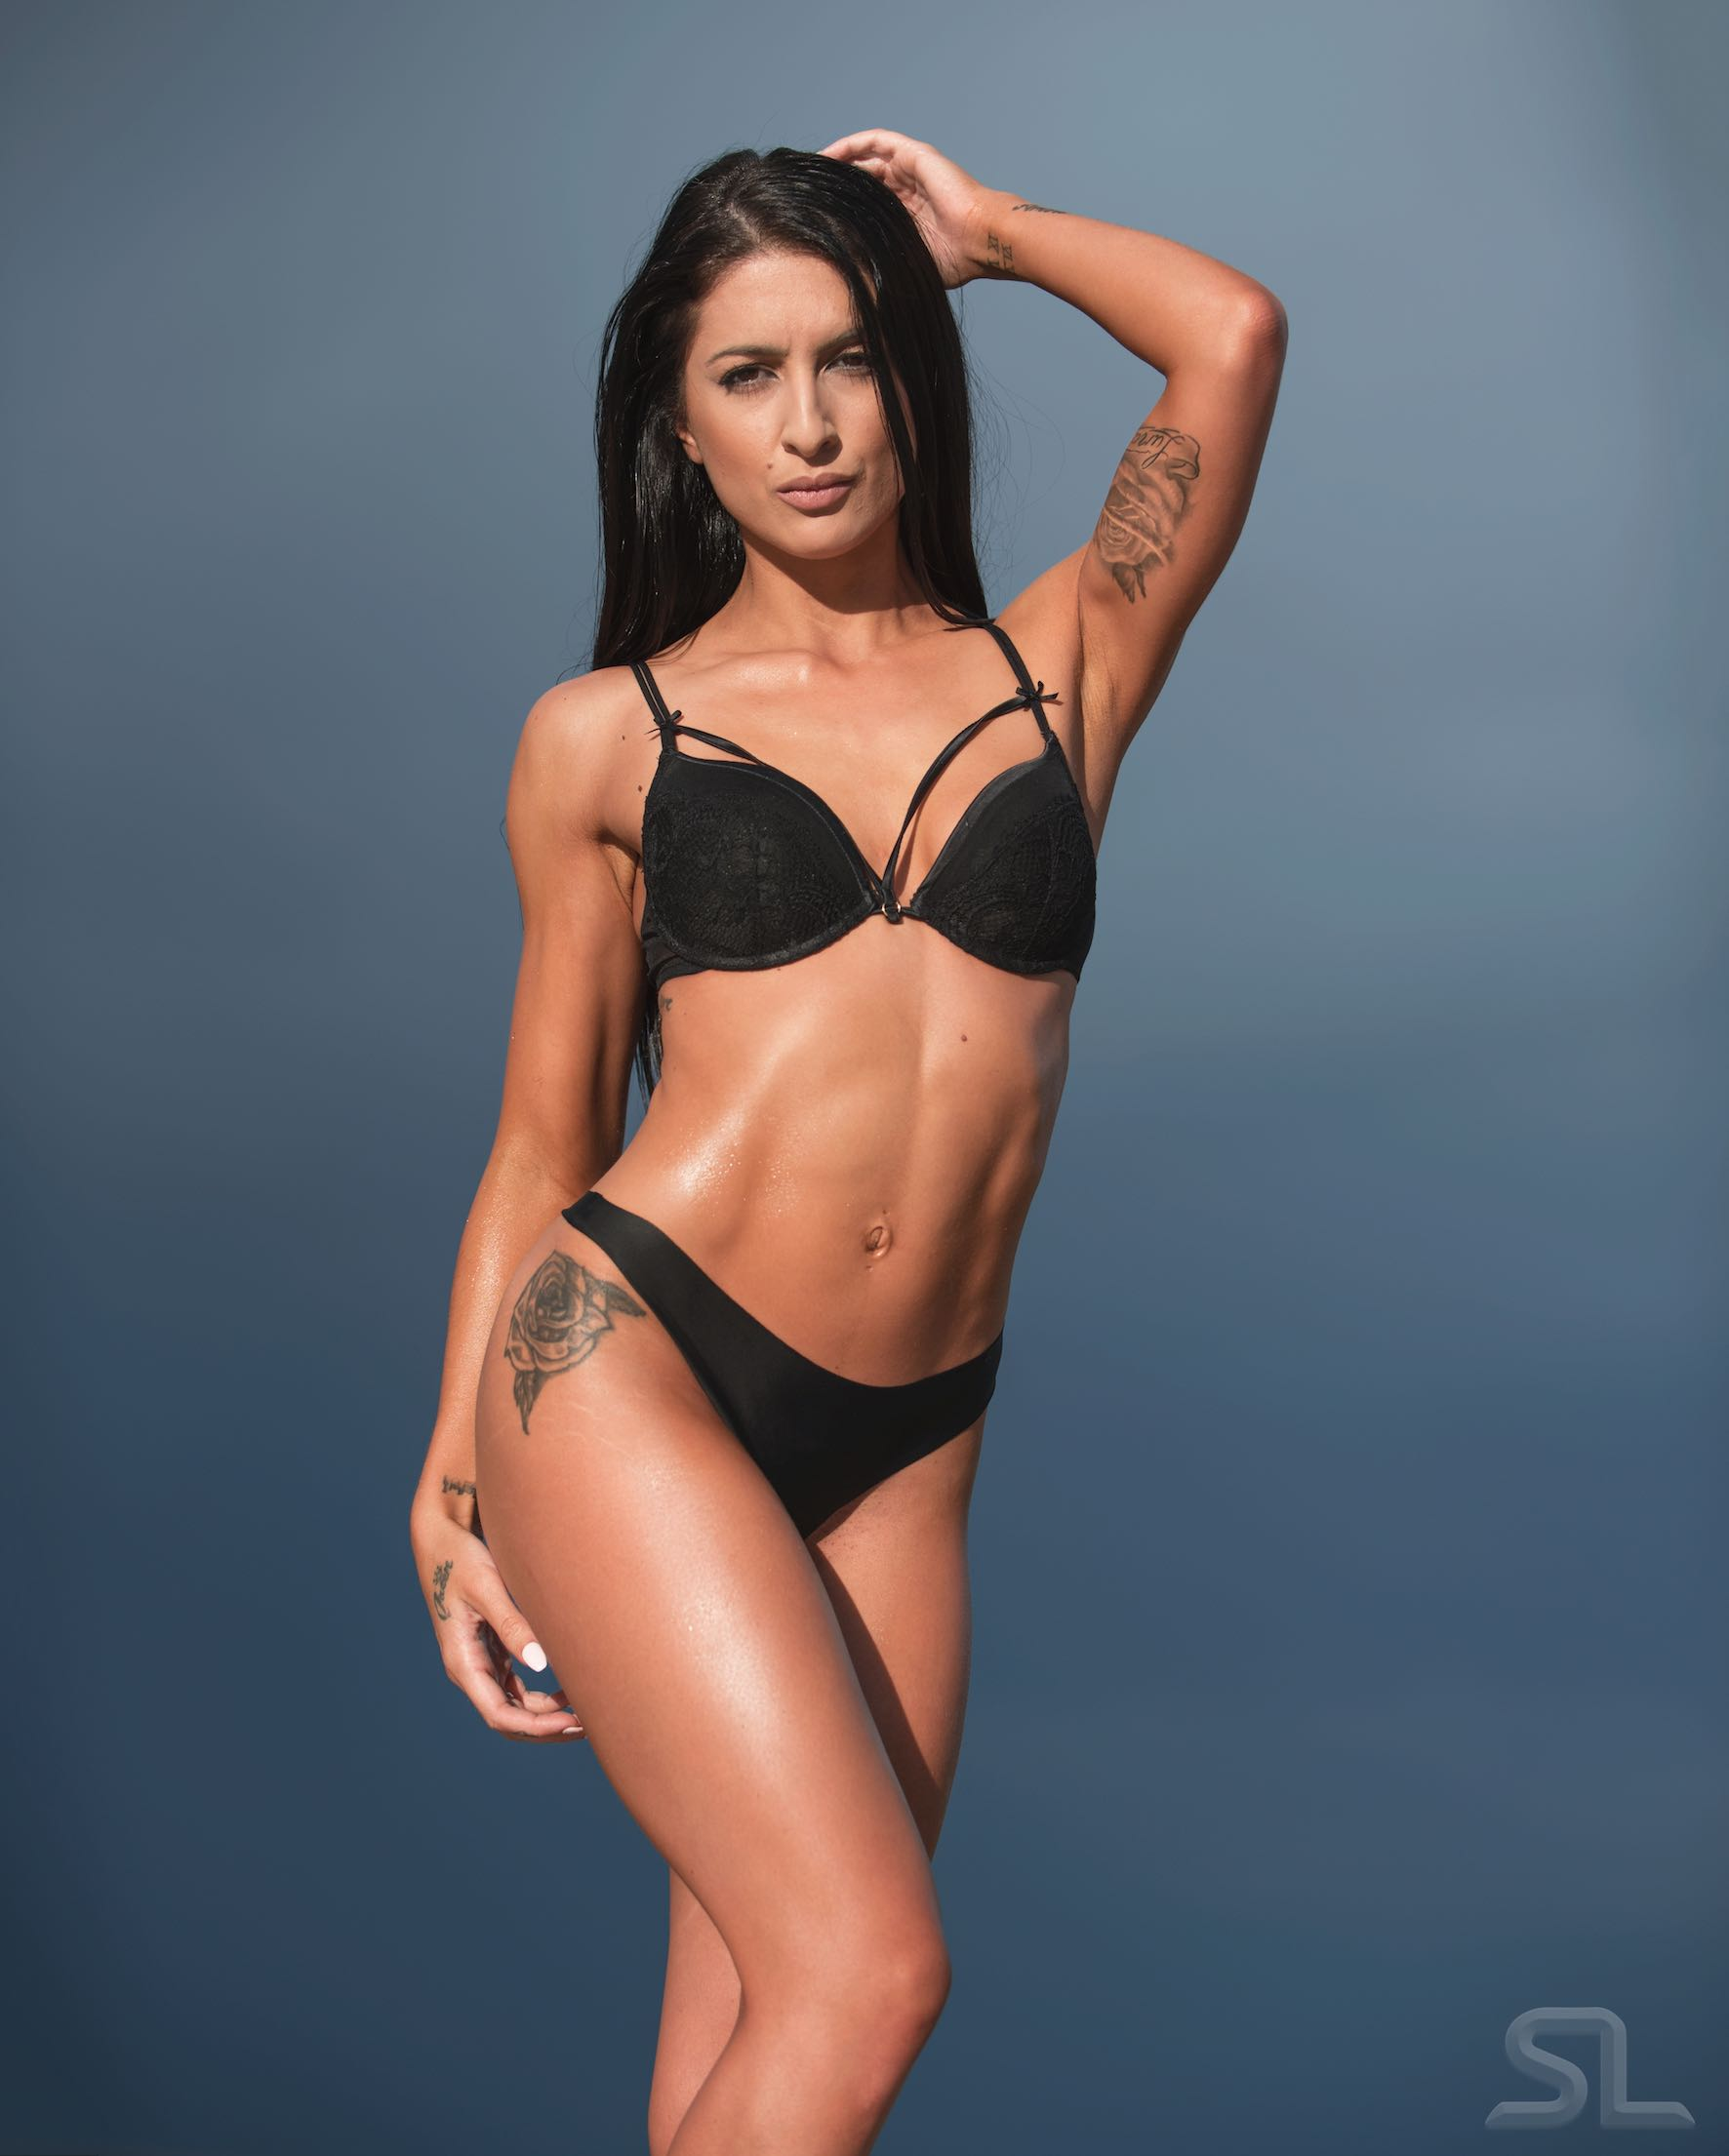 Meet Giovanna Smiraglia as our featured LW Babe